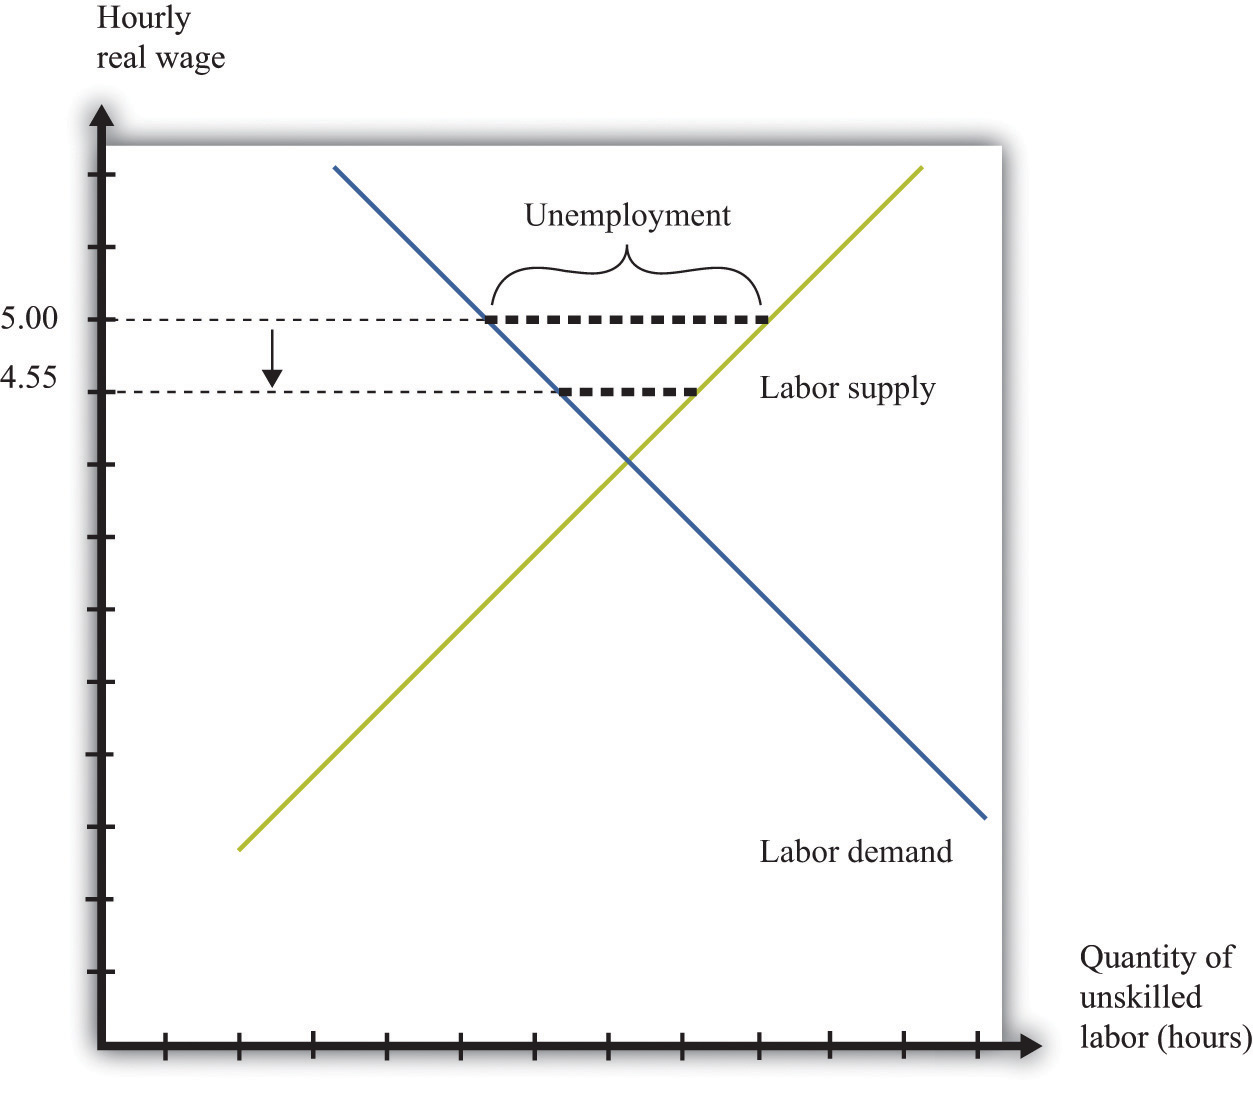 microeconomics theory through applications flatworld figure 10 8 effects on unemployment of a reduction in the real minimum wage